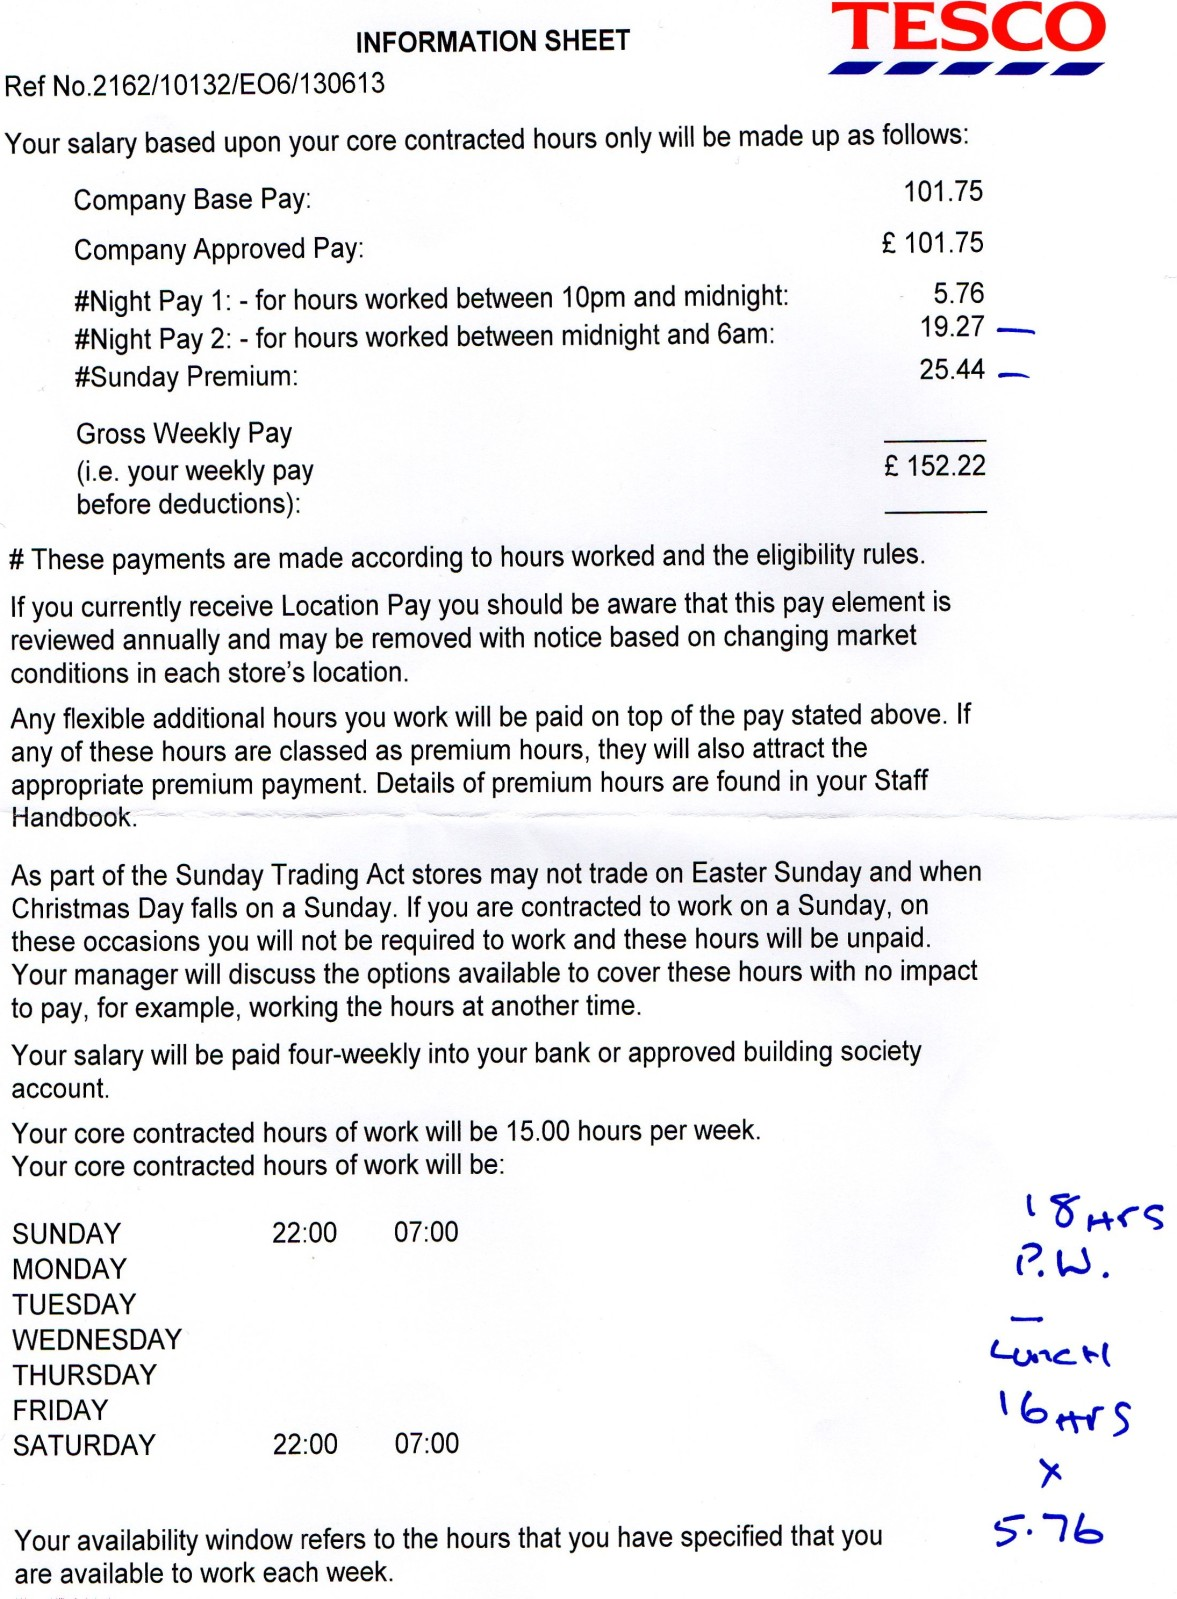 Tesco Customer Assistant Nights Pay Picture Included